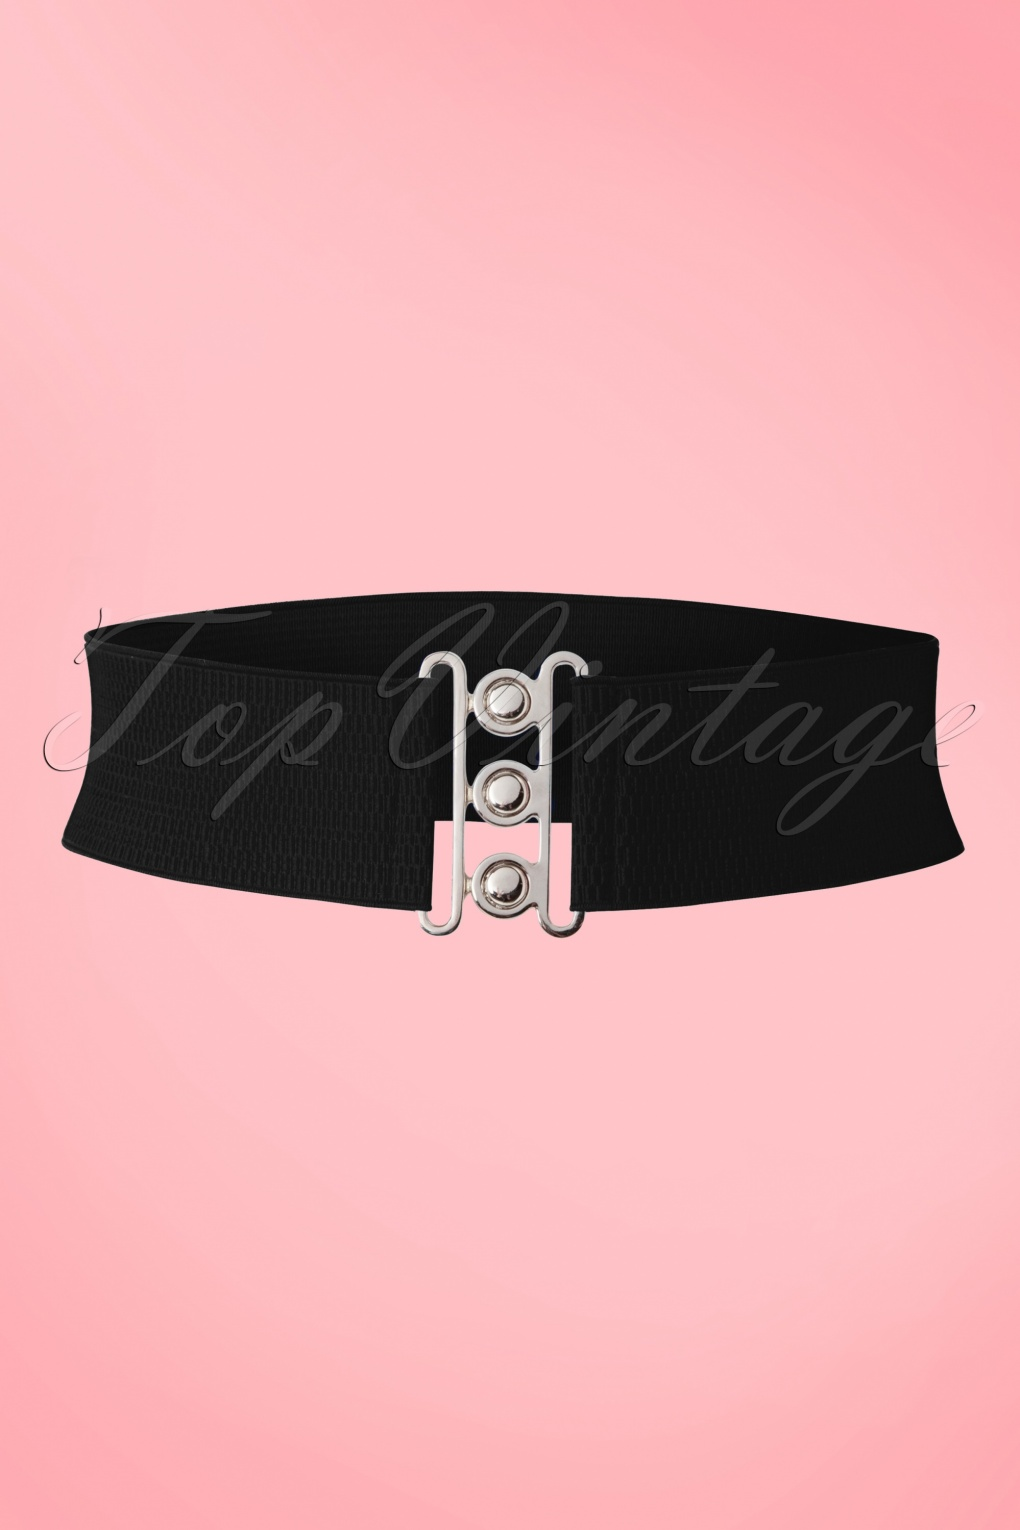 Vintage Wide Belts, Cinch Belts 50s Lauren Vintage Stretch Belt in Black £7.32 AT vintagedancer.com